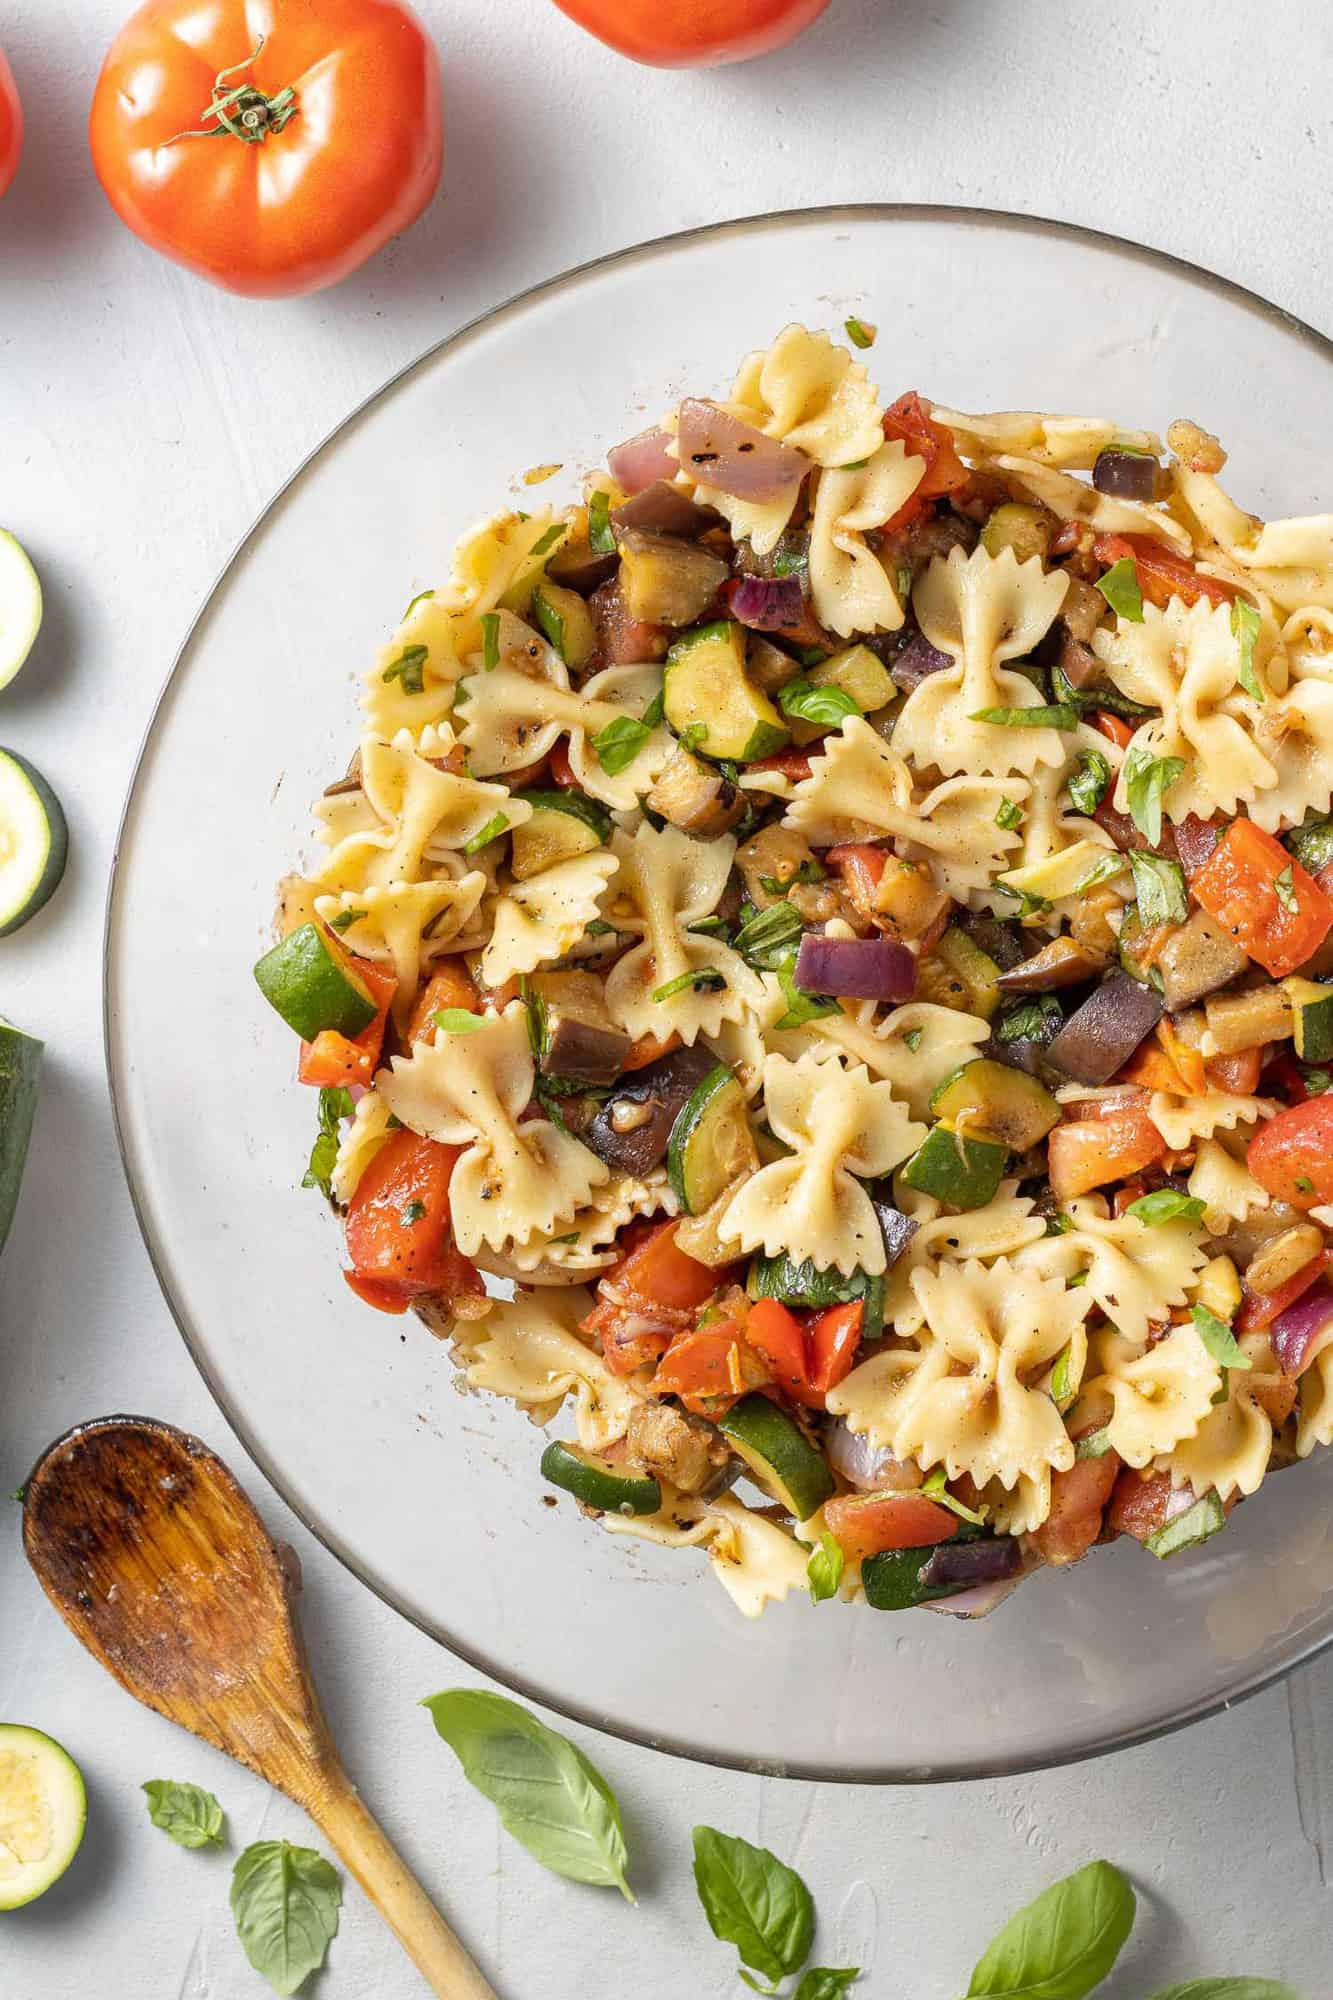 Pasta salad in a clear glass mixing bowl.